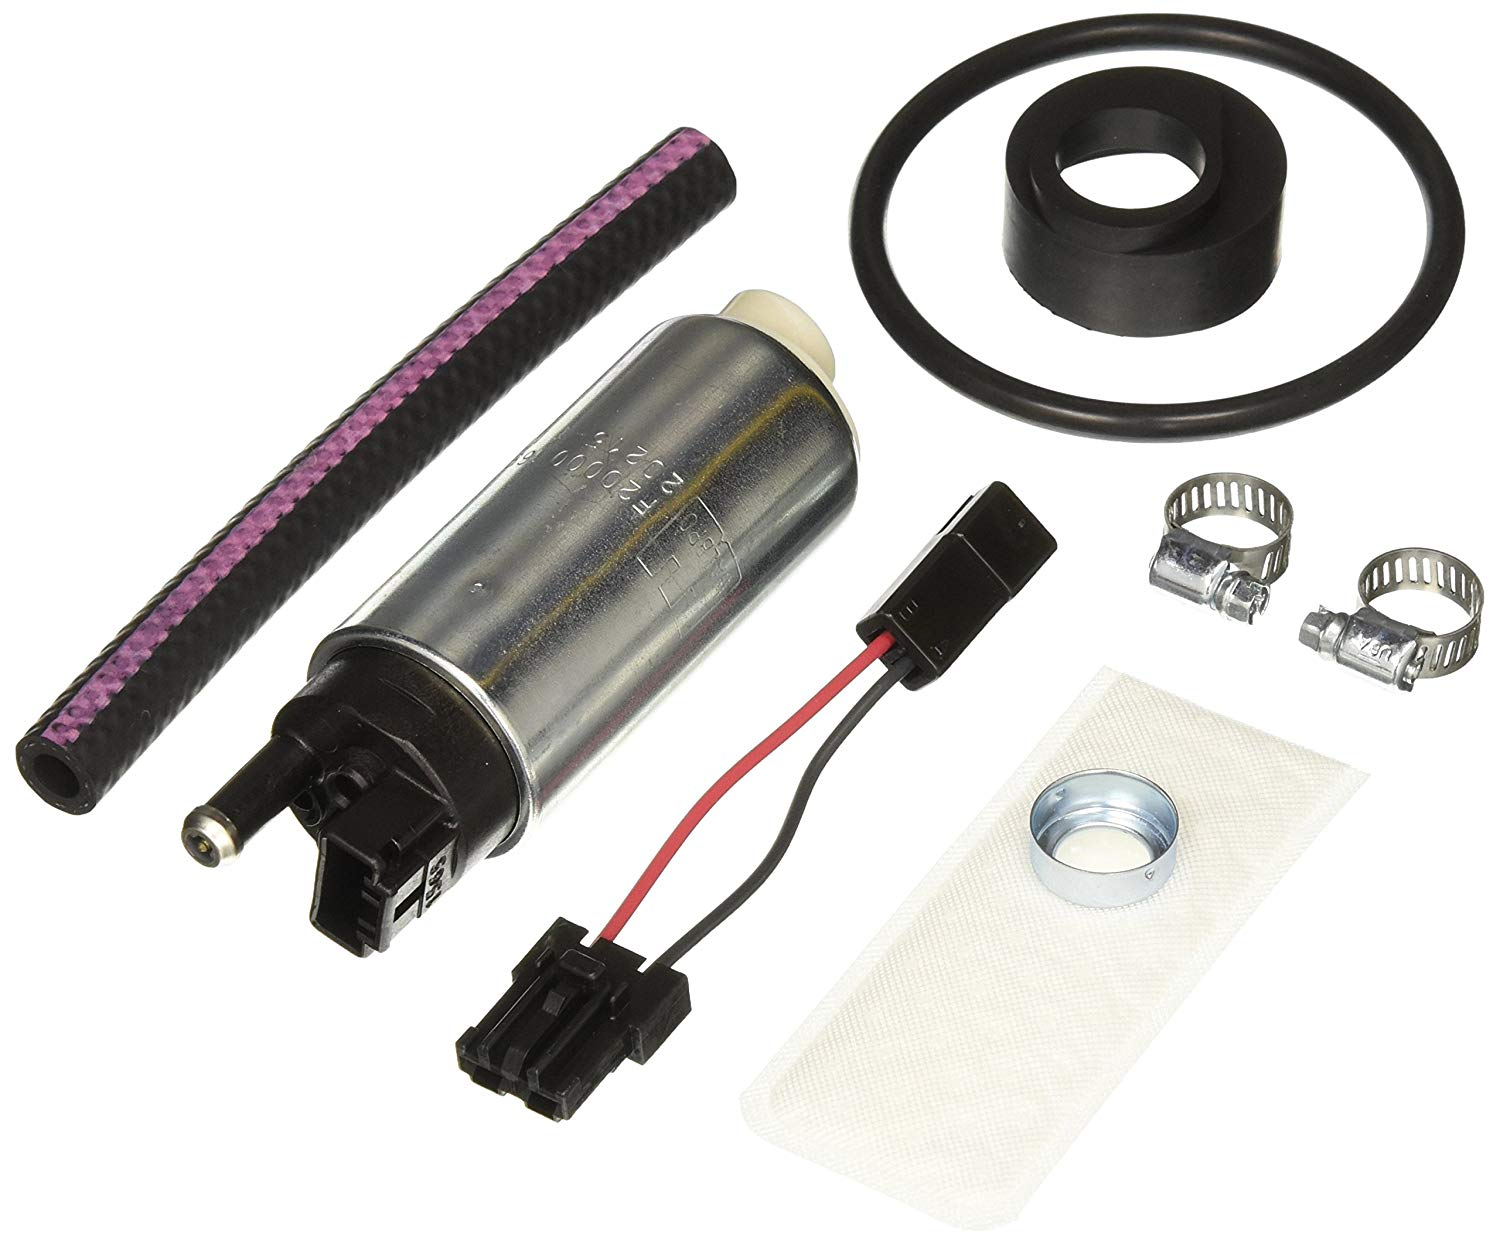 Walbro 255lph In-Tank Fuel Pump Kit (GM Square Body Truck) P/N GCA758